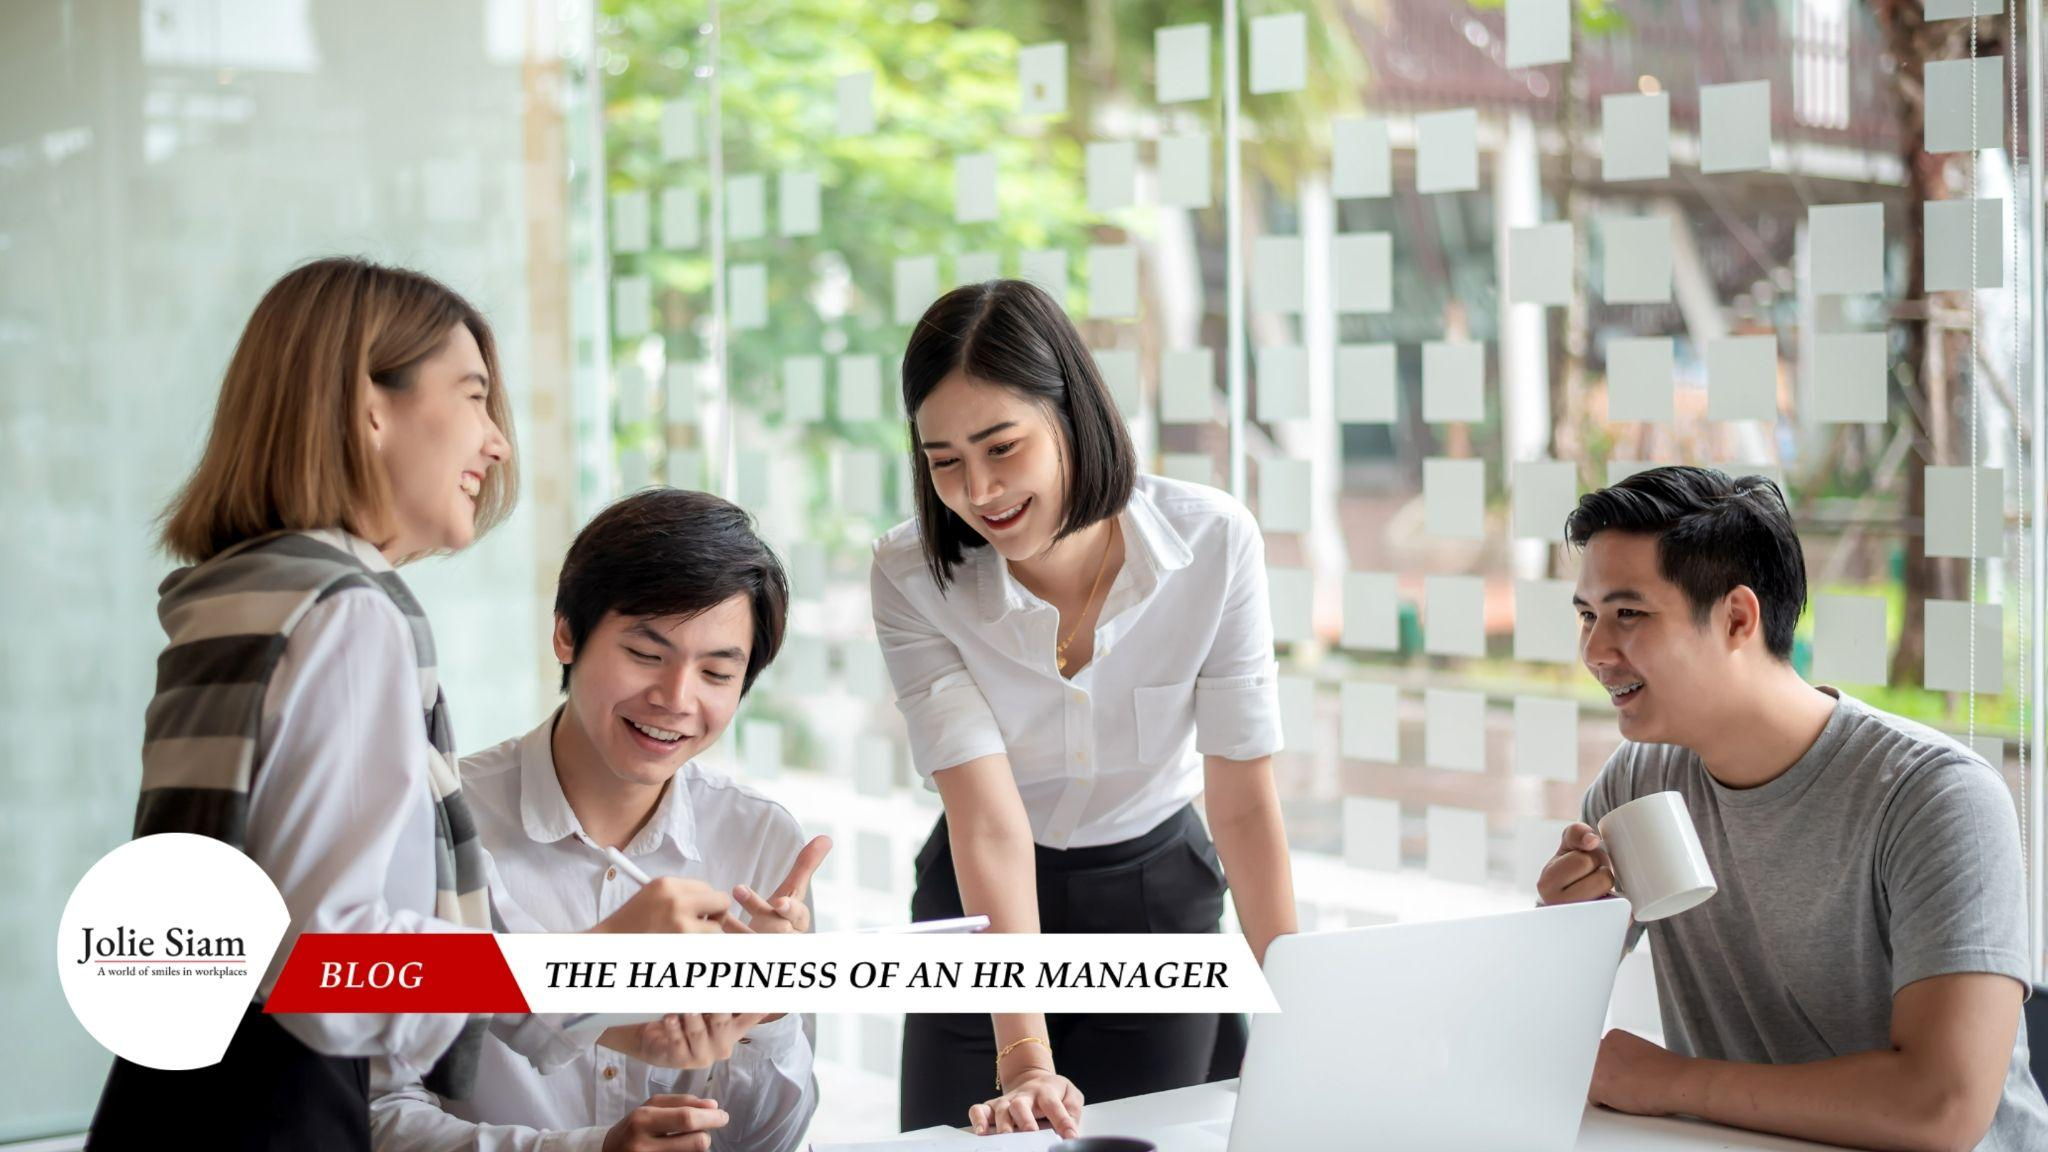 the happiness of an HR manager Jolie Siam